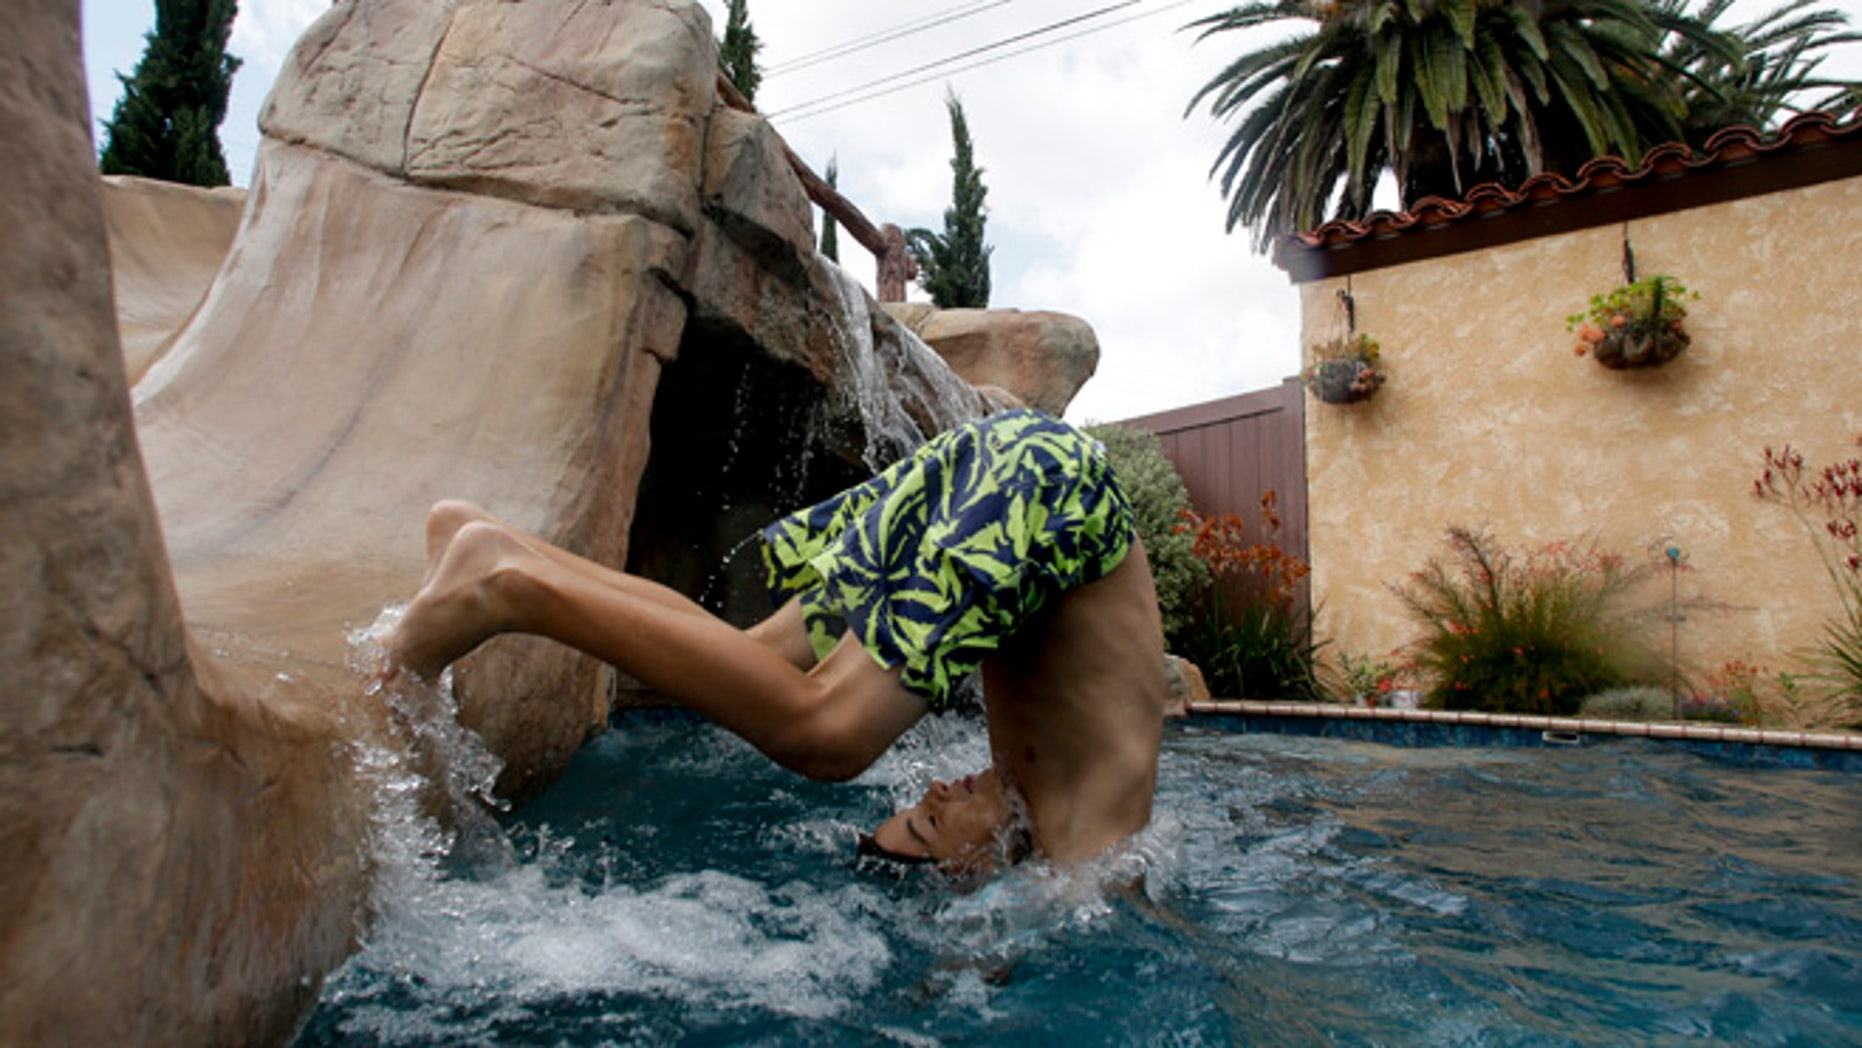 May 21, 2015: Jake Hall, 10, dives into a backyard pool in Long Beach, Calif. As residents struggle to reduce potable water consumption by 25 percent, the California Pool and Spa Association is promoting a campaign called Lets Pool Together and aggressively lobbying water districts to quash proposed bans on filling pools and spas.